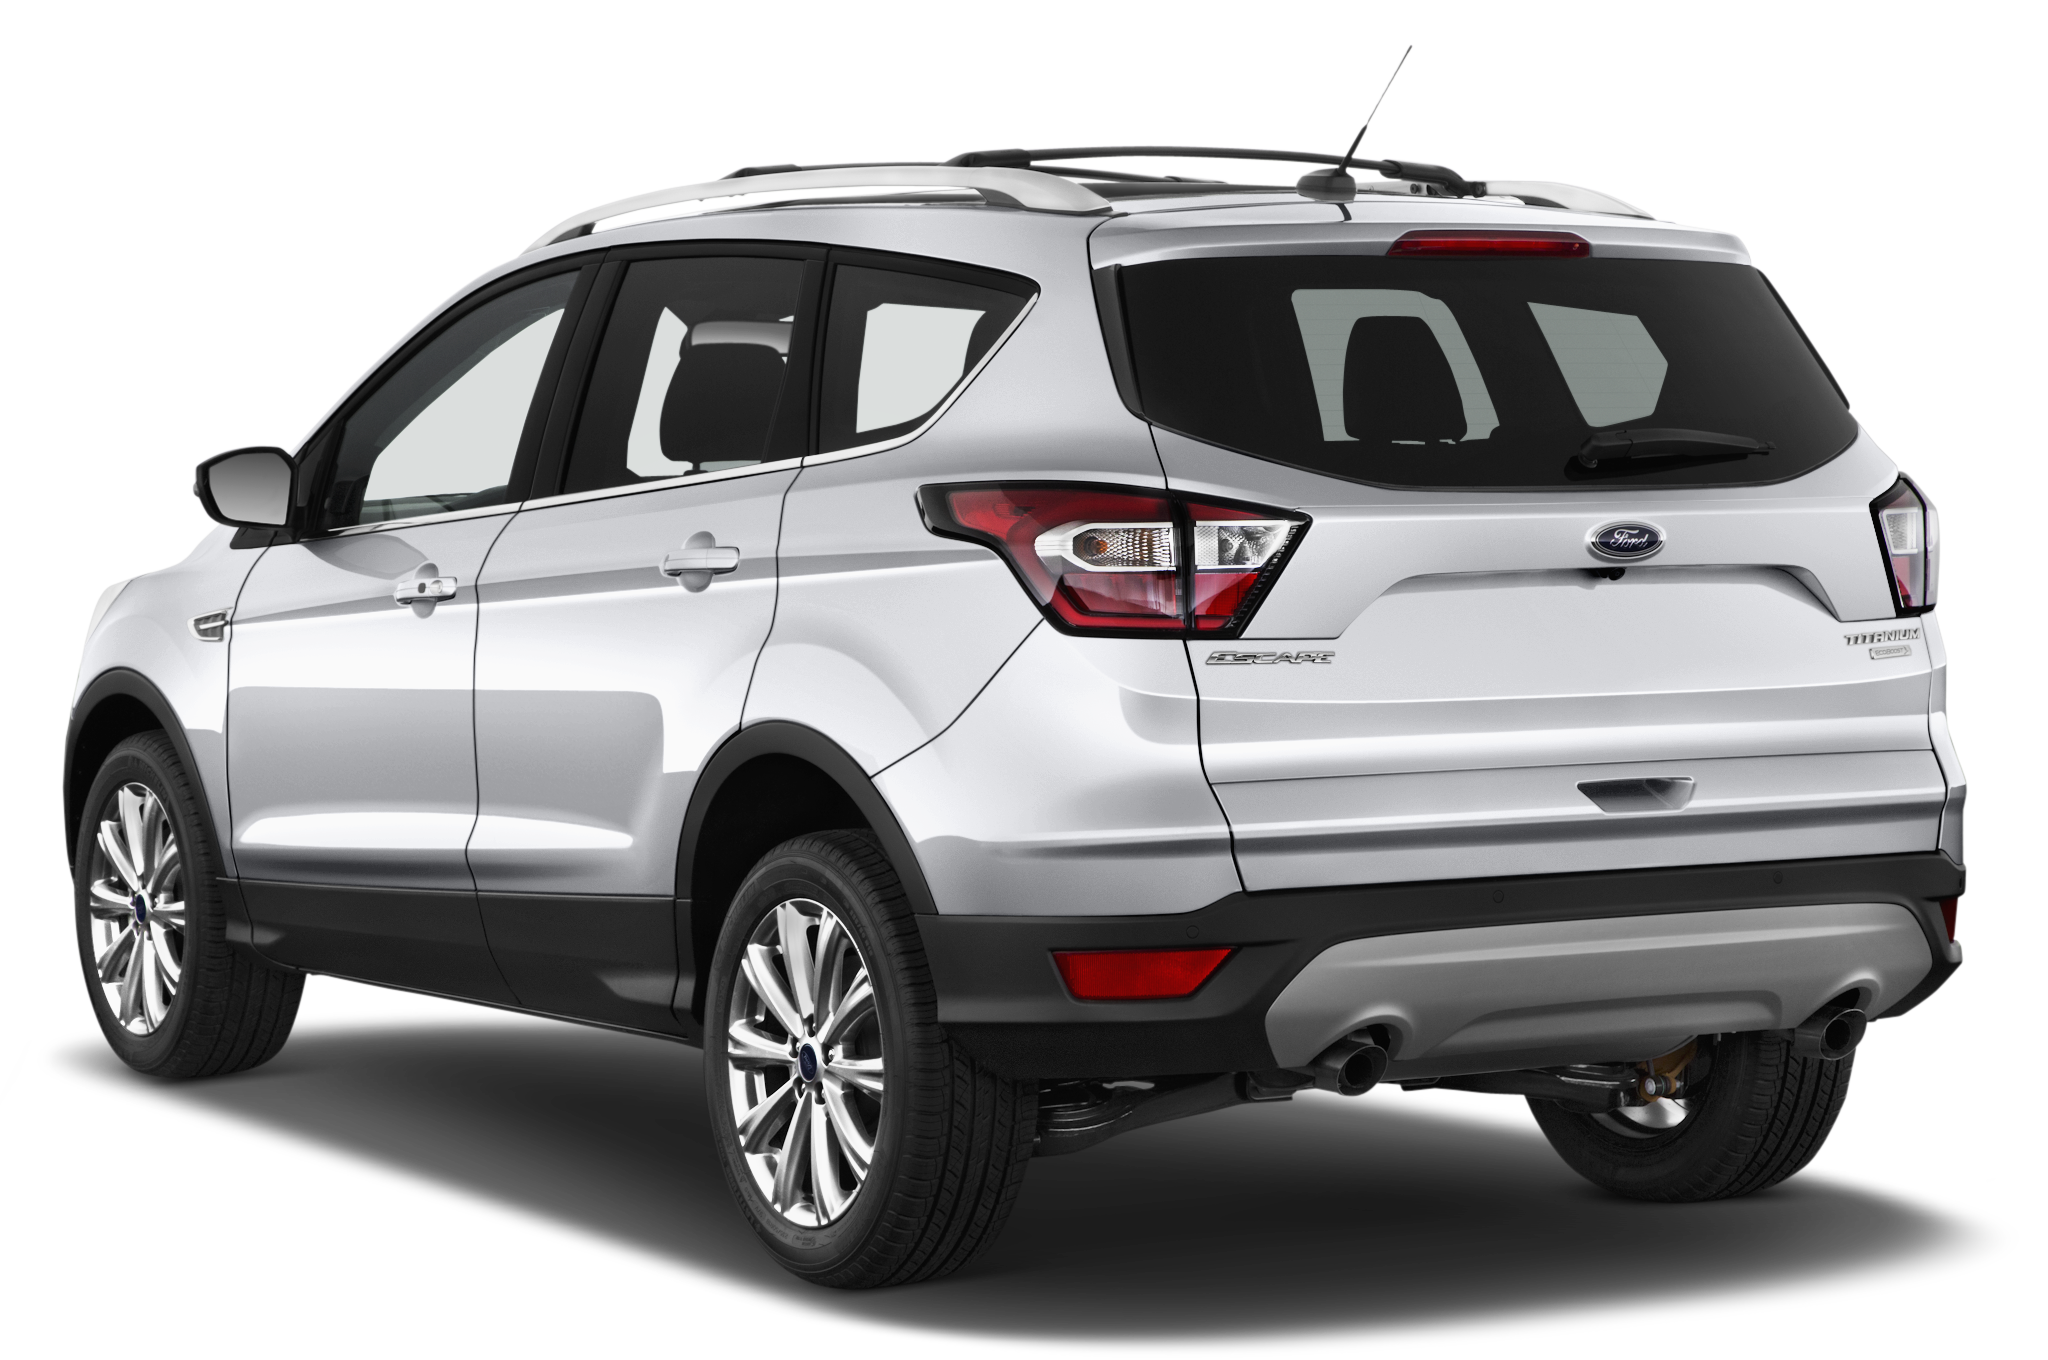 New Ford Sync Connect Smartphone App Launches On 2017 Escape Engine Diagram 2005 3 0 23 39